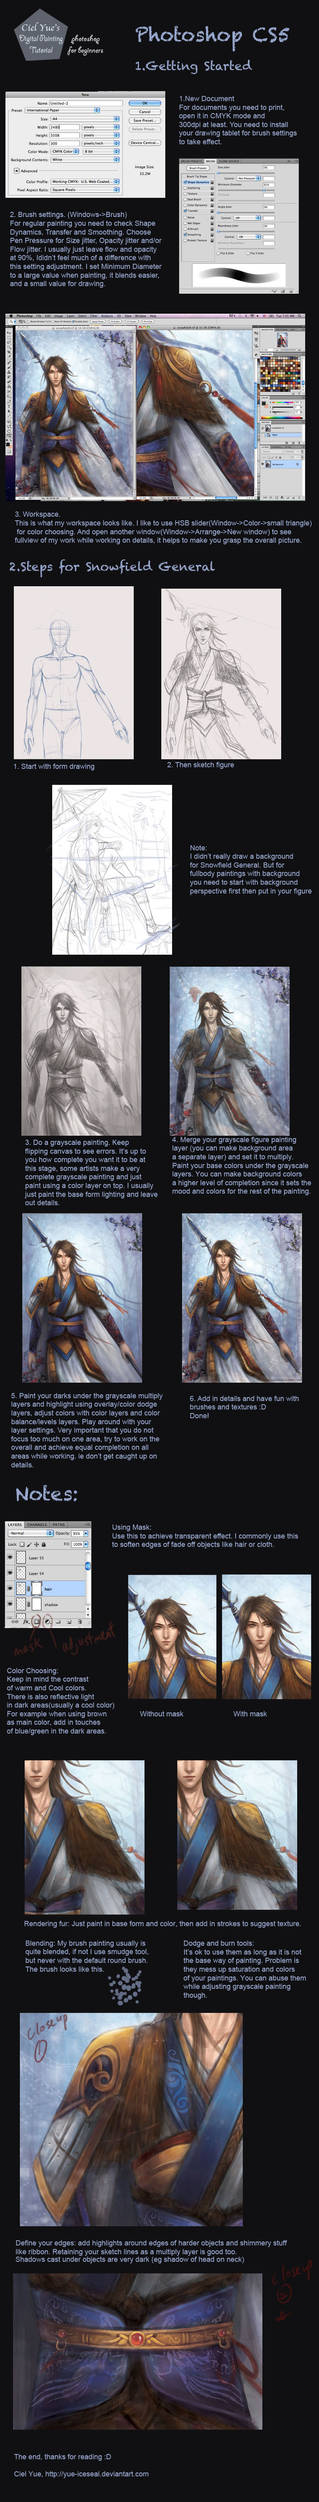 Photoshop Painting Tutorial